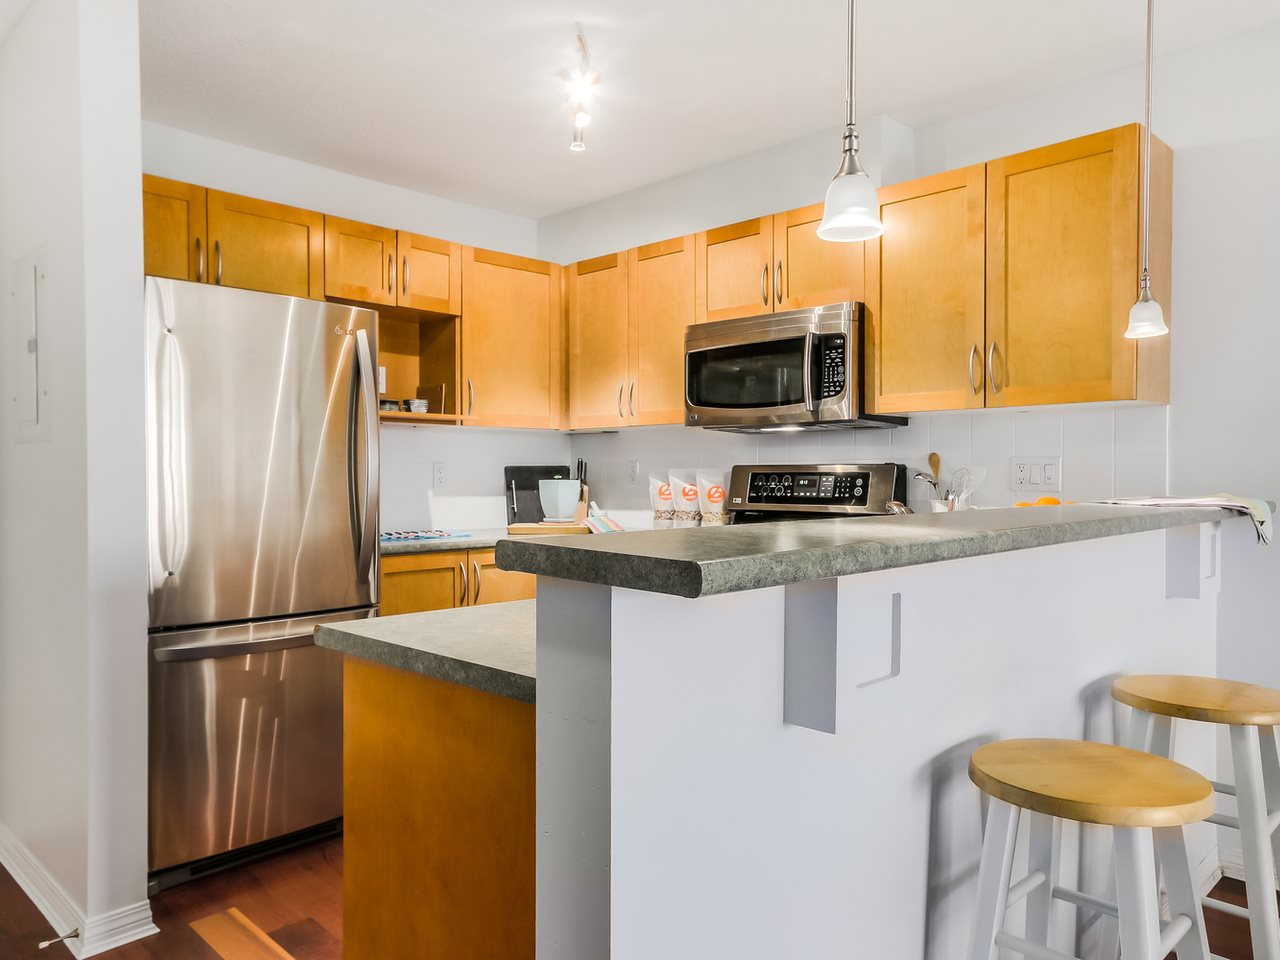 Photo 10: 109 333 E 1ST STREET in North Vancouver: Lower Lonsdale Condo for sale : MLS® # R2032321